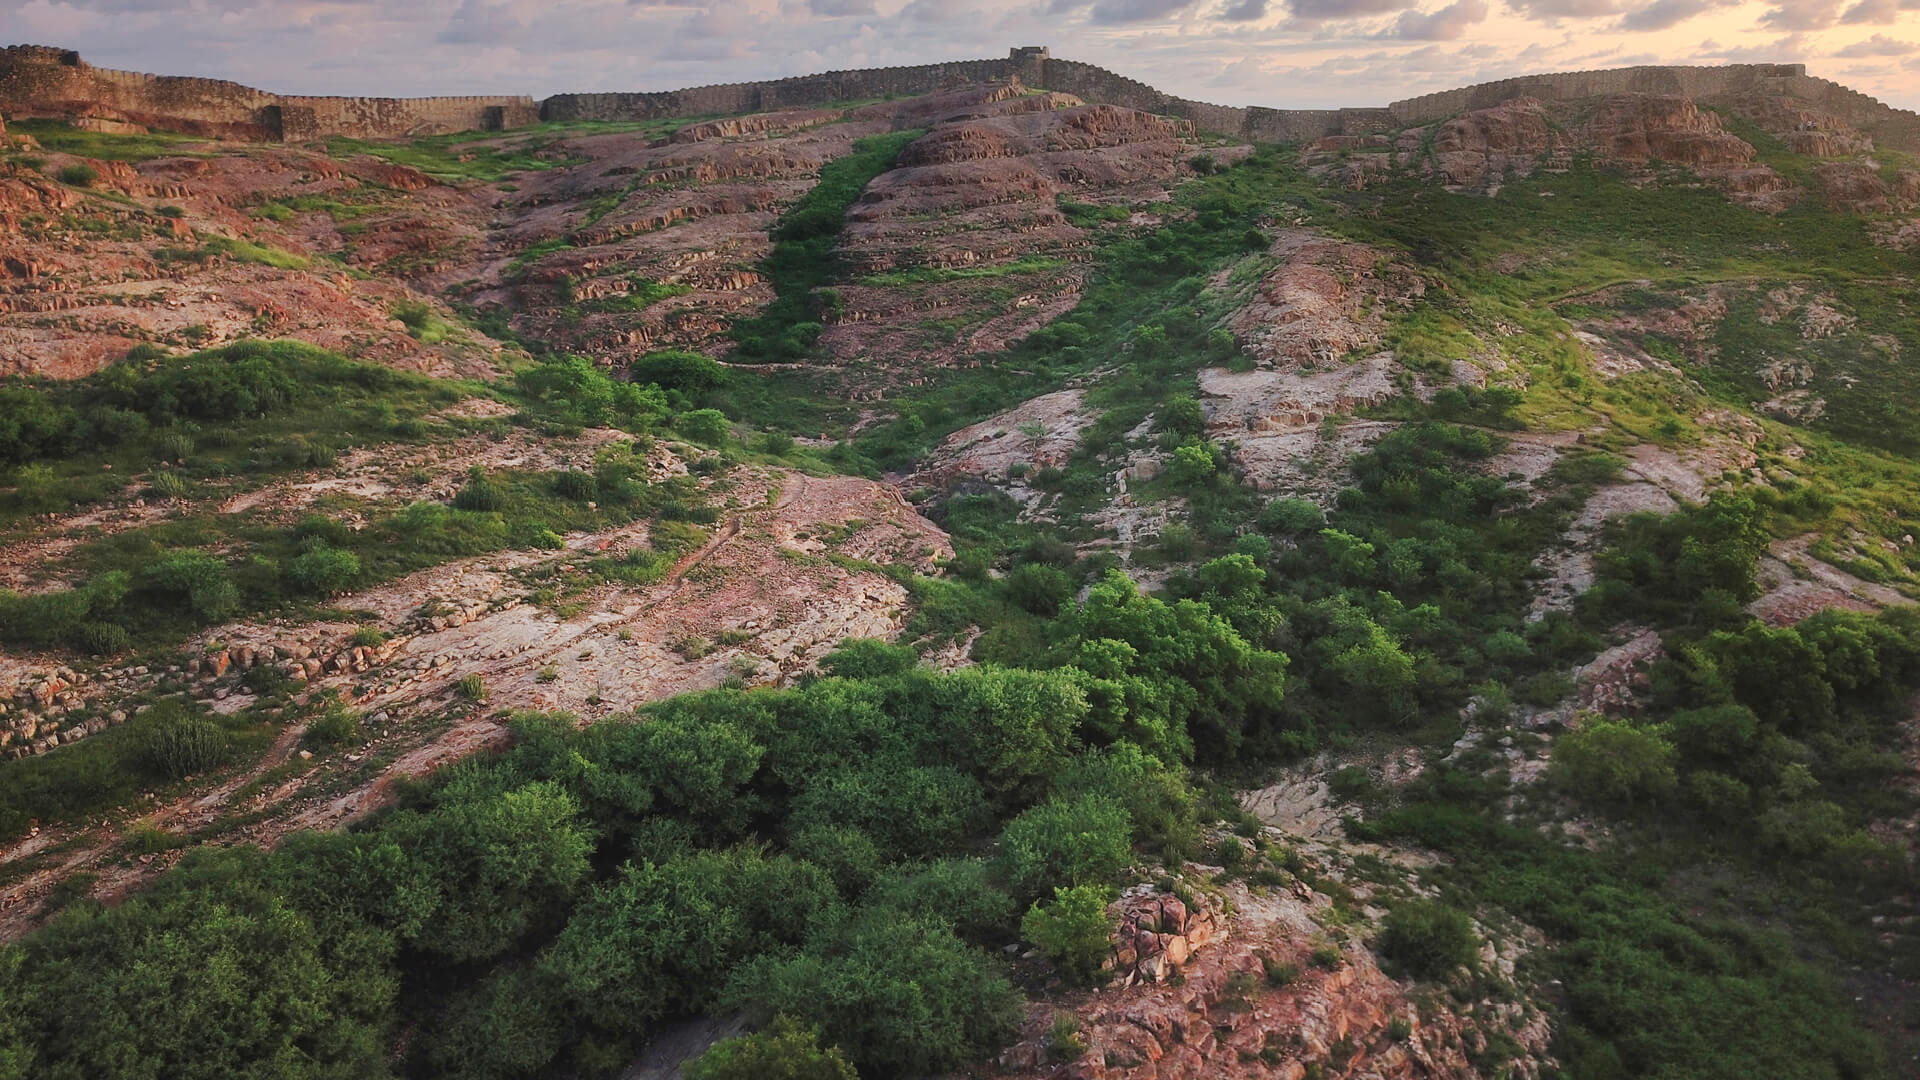 Rehabilitating Ecosystems: Global projects that reflect the UN's 2030 Agenda